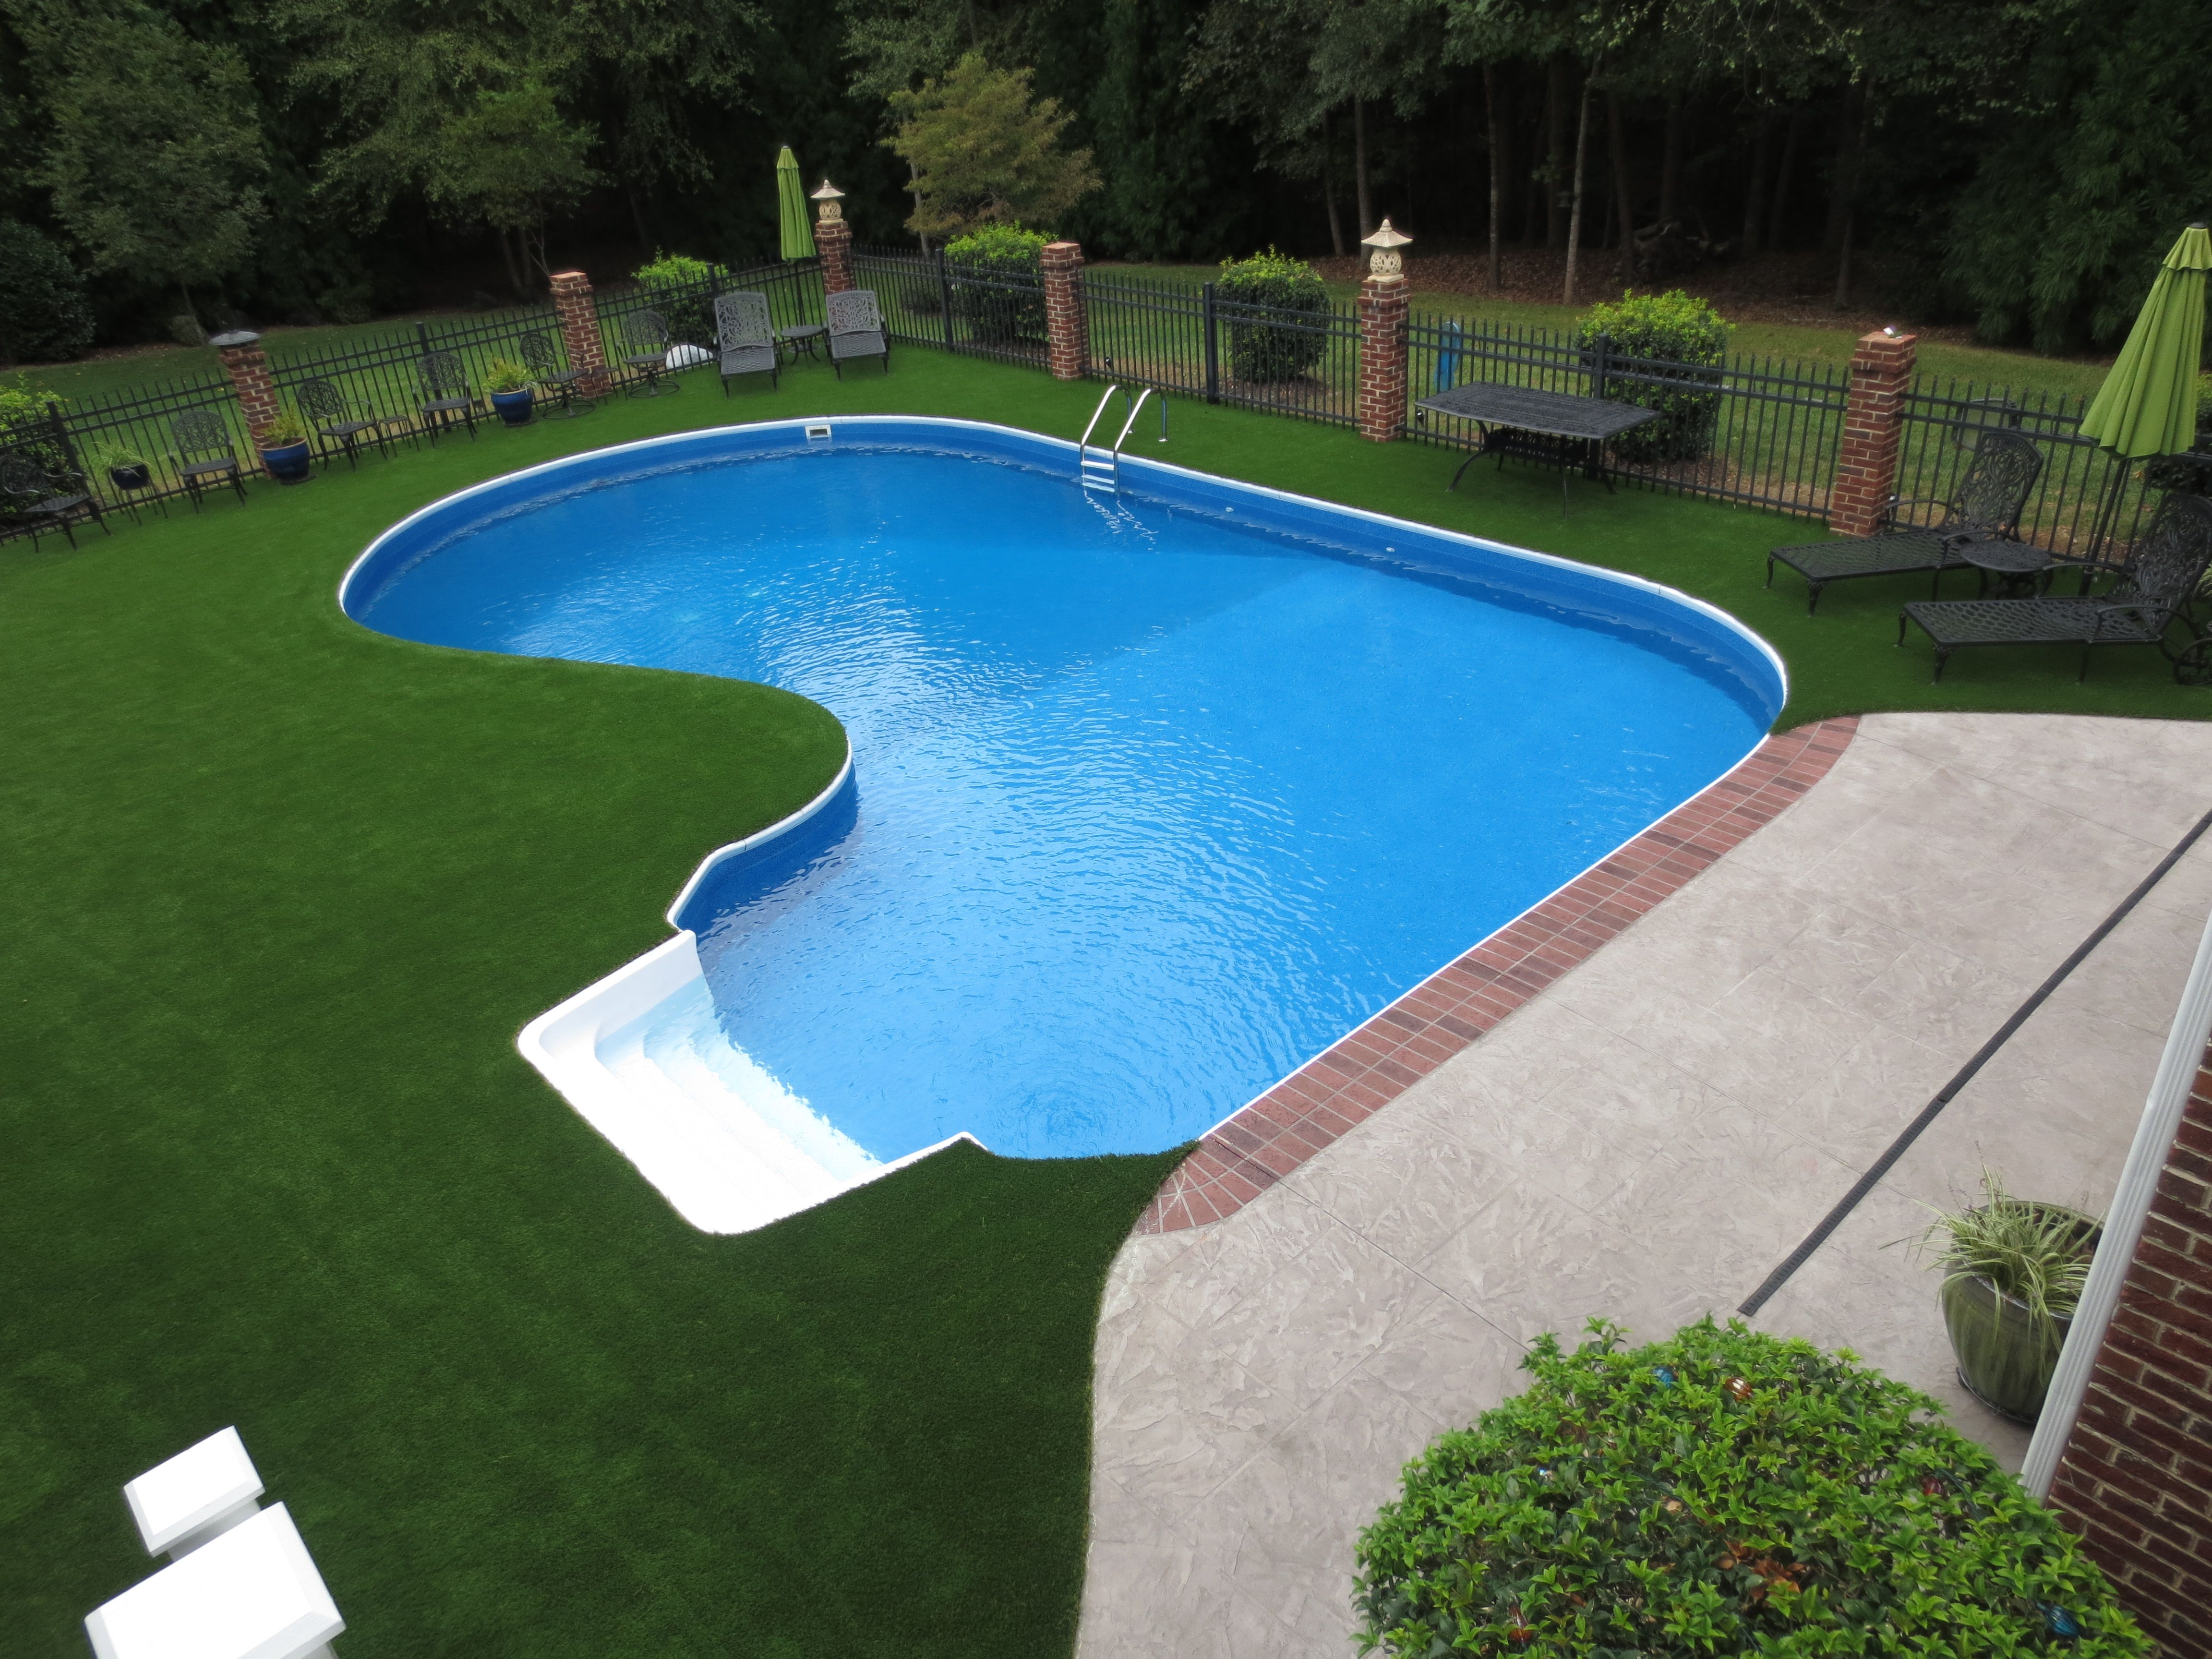 Swimming pool surround with artificial turf swimming for Pool surround ideas